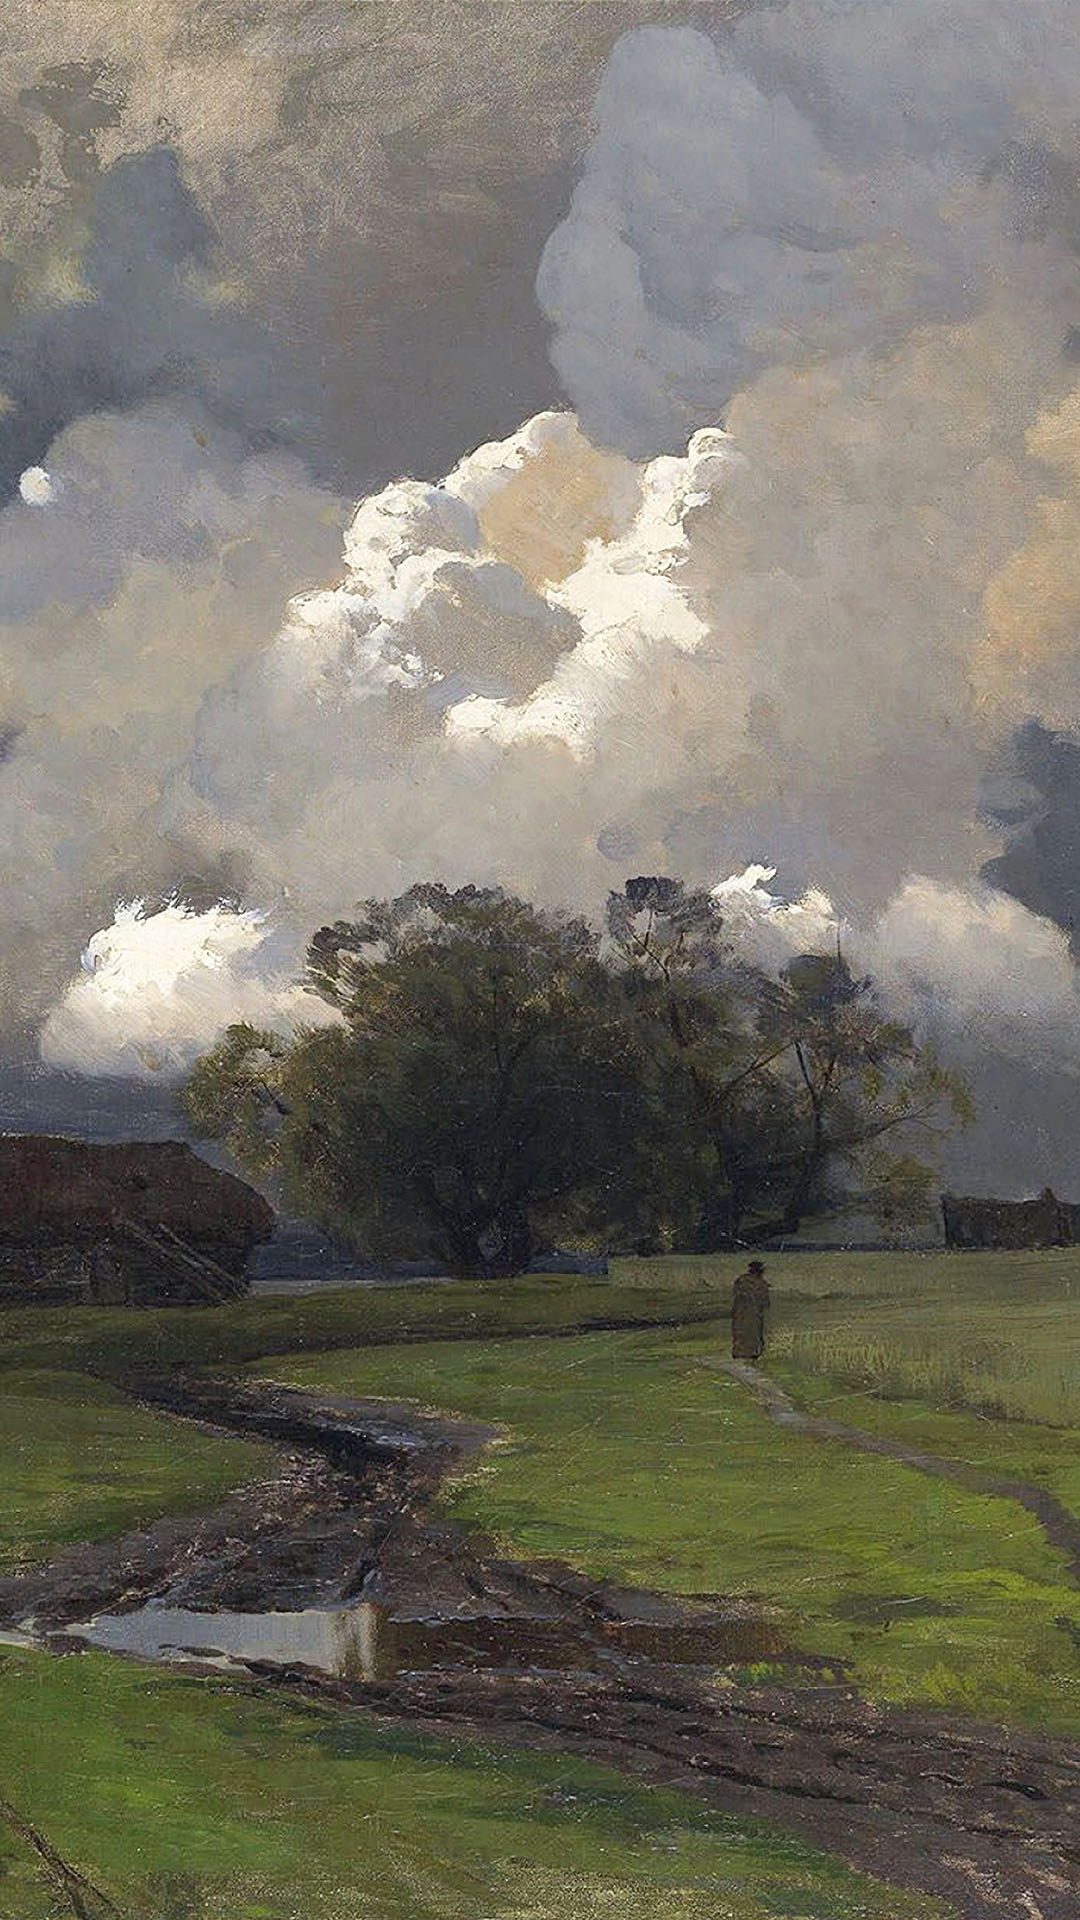 isaac levitan - In the vicinity of the SS monastery 1080x1920